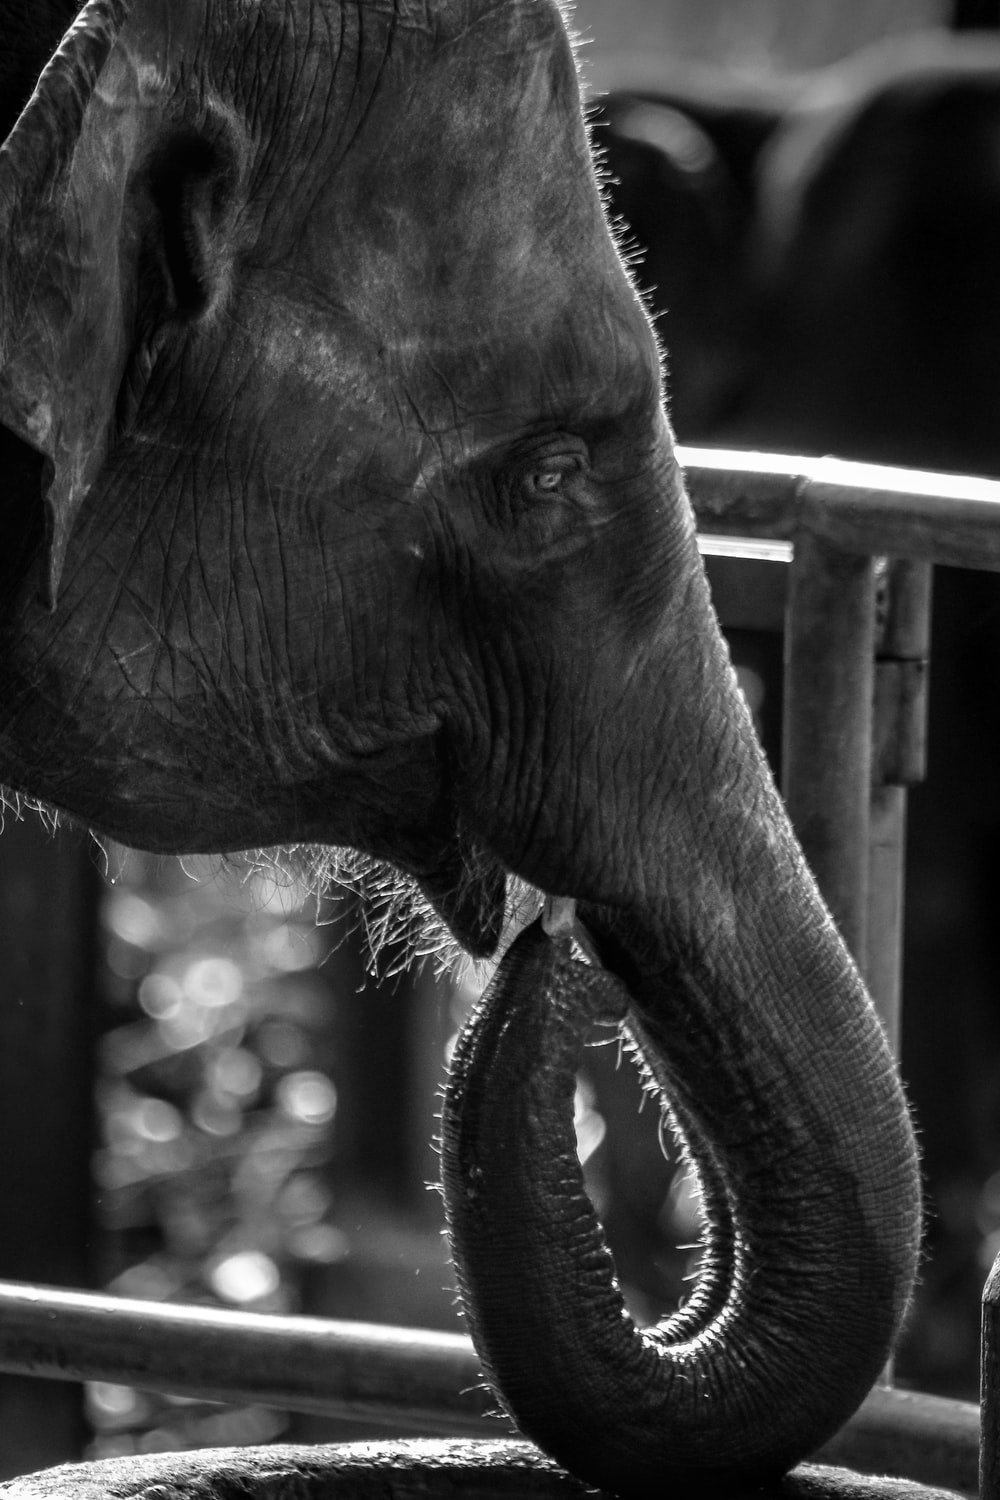 elephant in grayscale photography during daytime